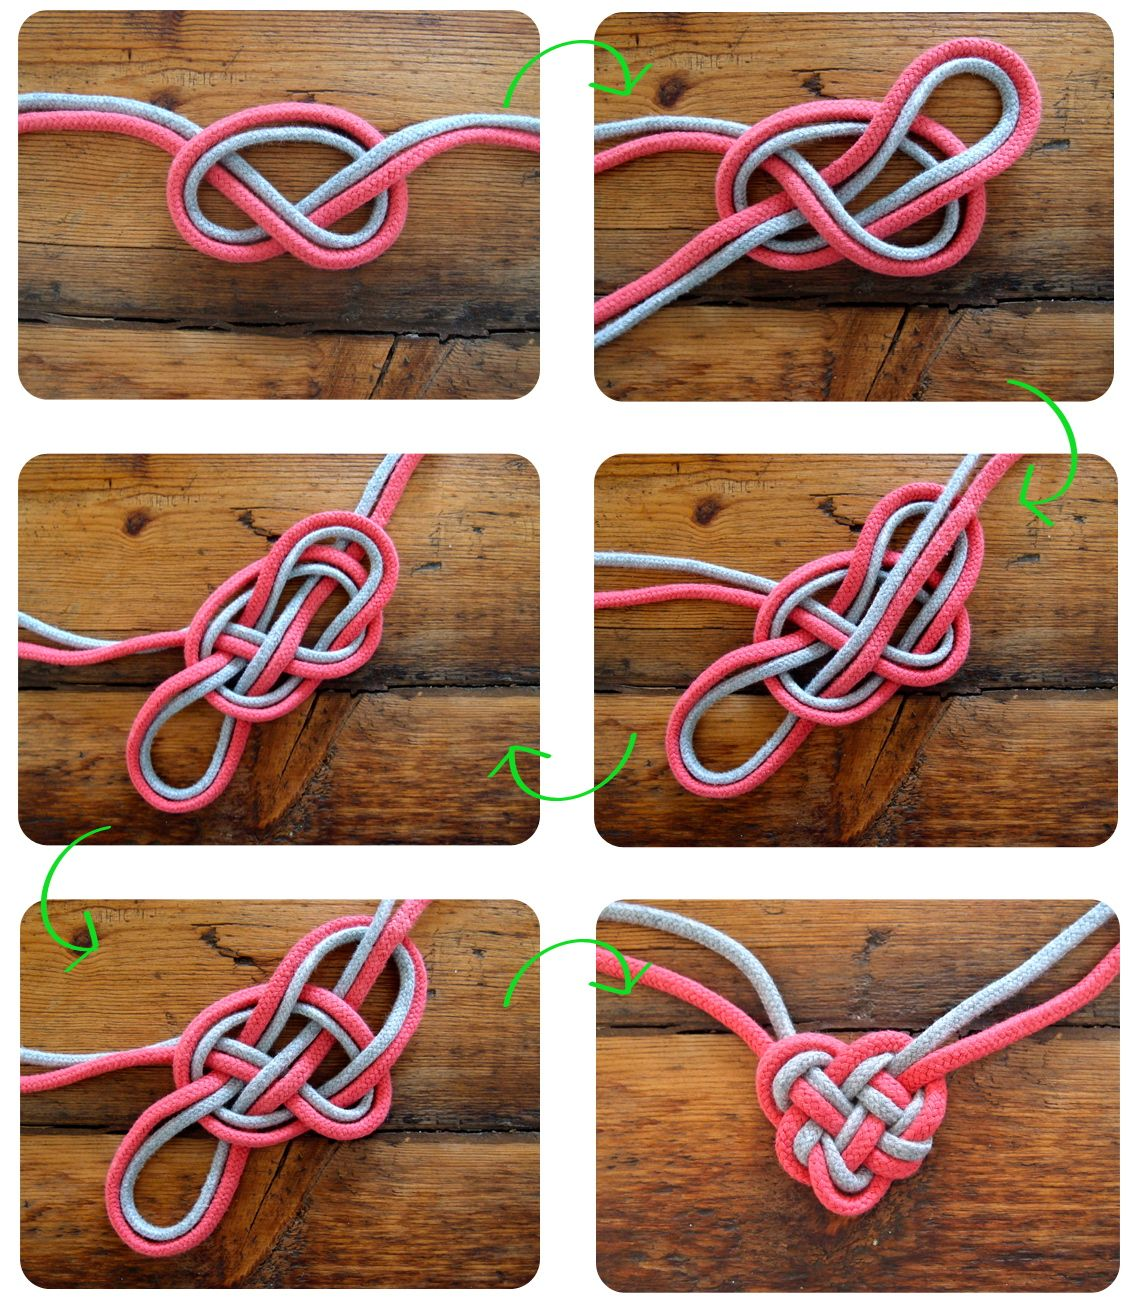 Celtic heart knot necklace - Neat-O!